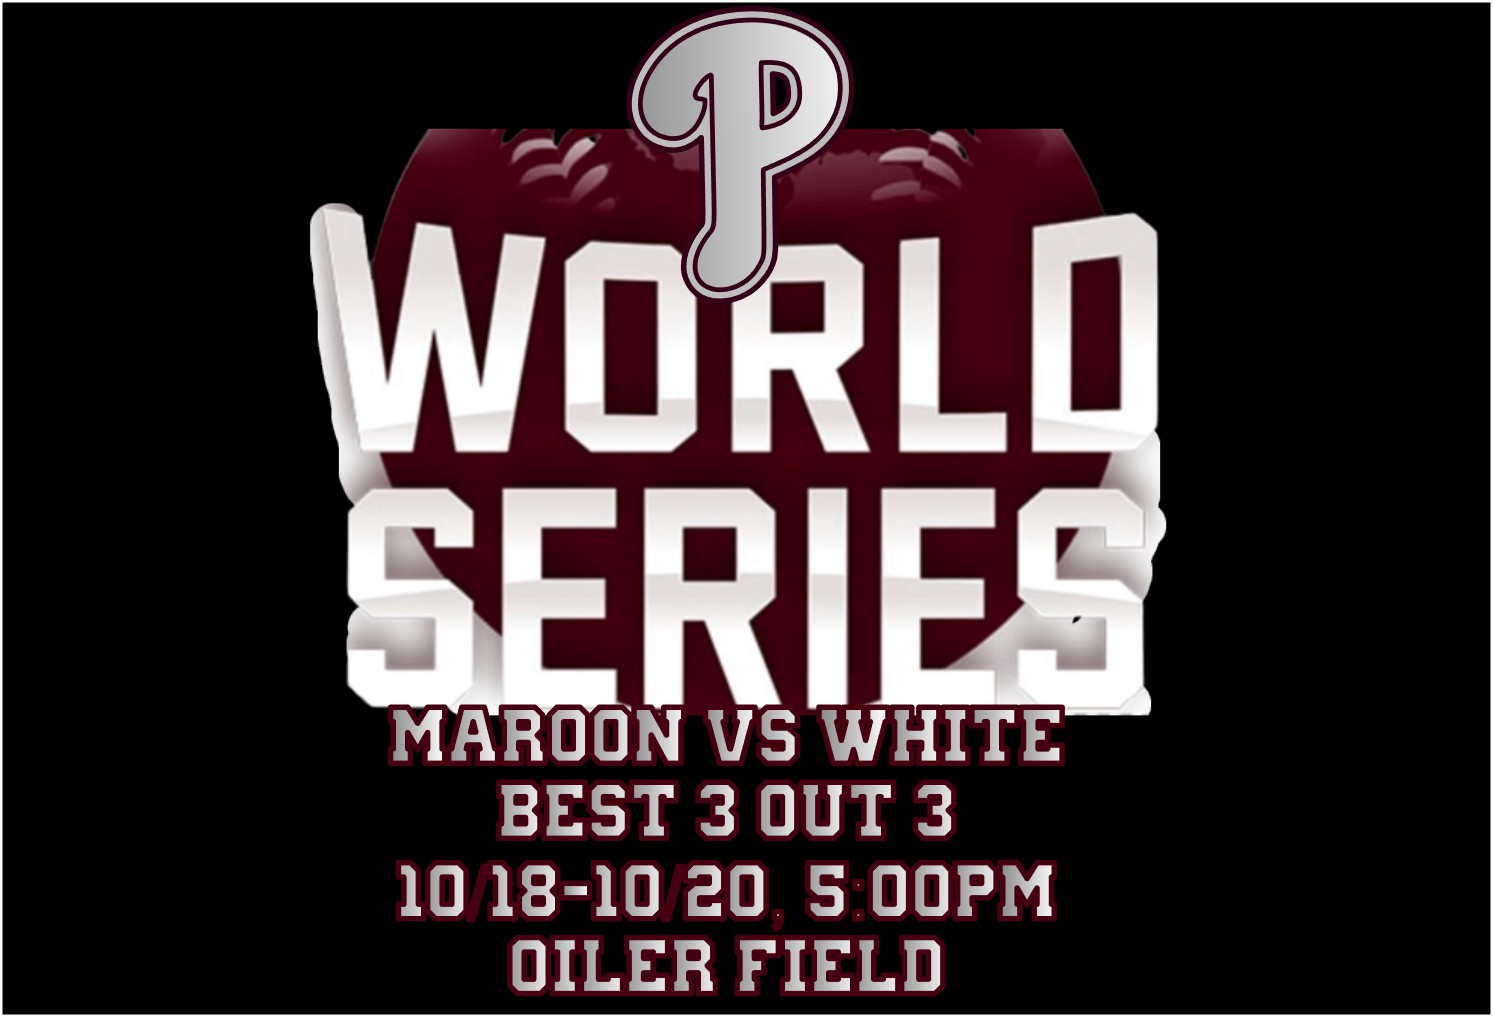 Pearland world series